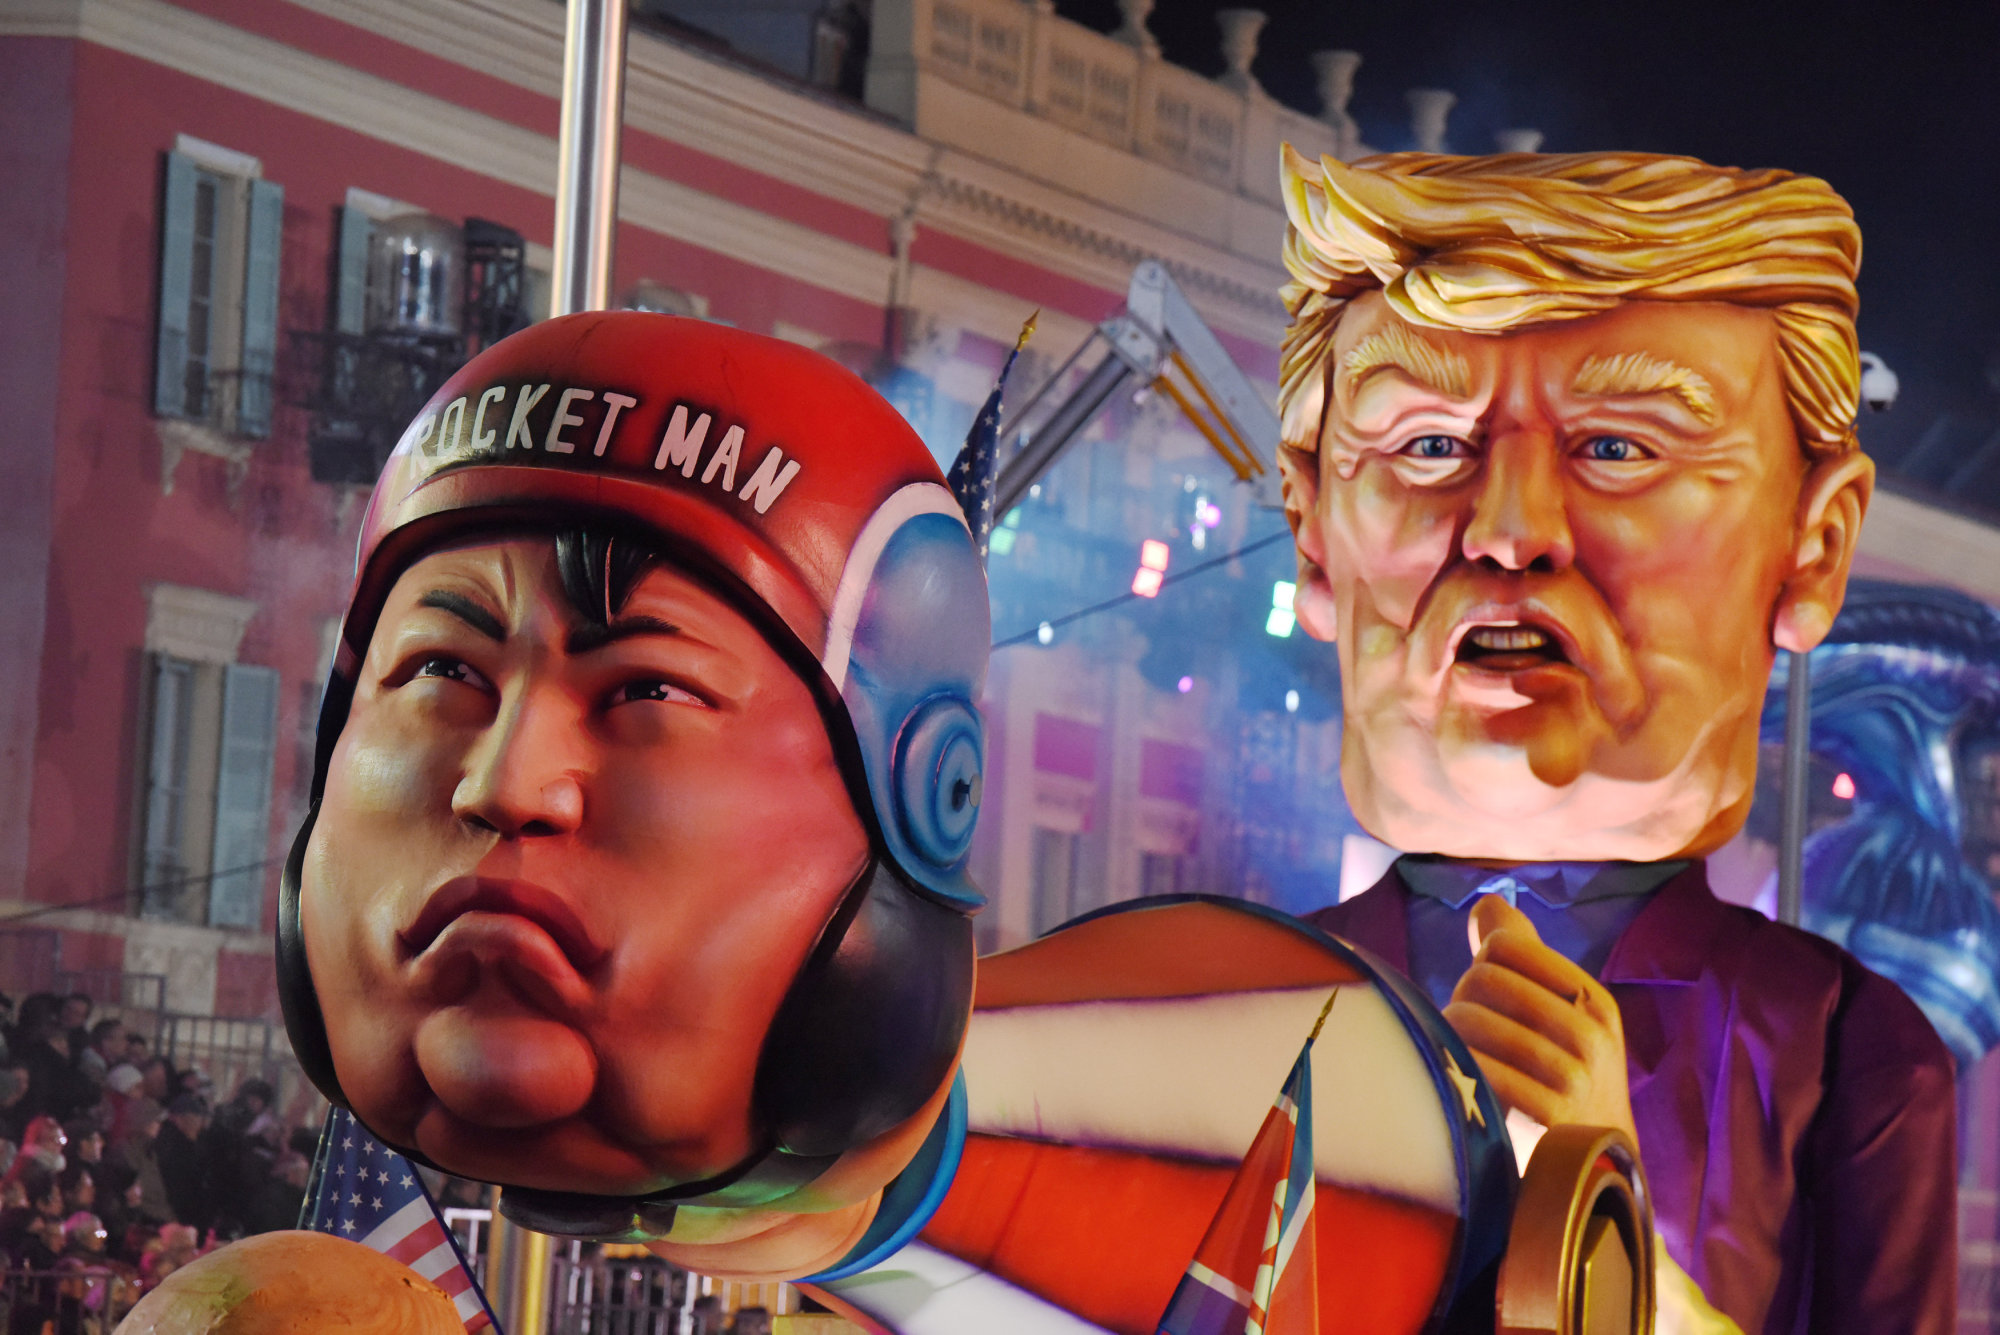 A float with effigies of North Korean leader Kim Jong Un and U.S. President Donald Trump is paraded through the crowd during the 134th Carnival parade in Nice, France, on Tuesday.   REUTERS